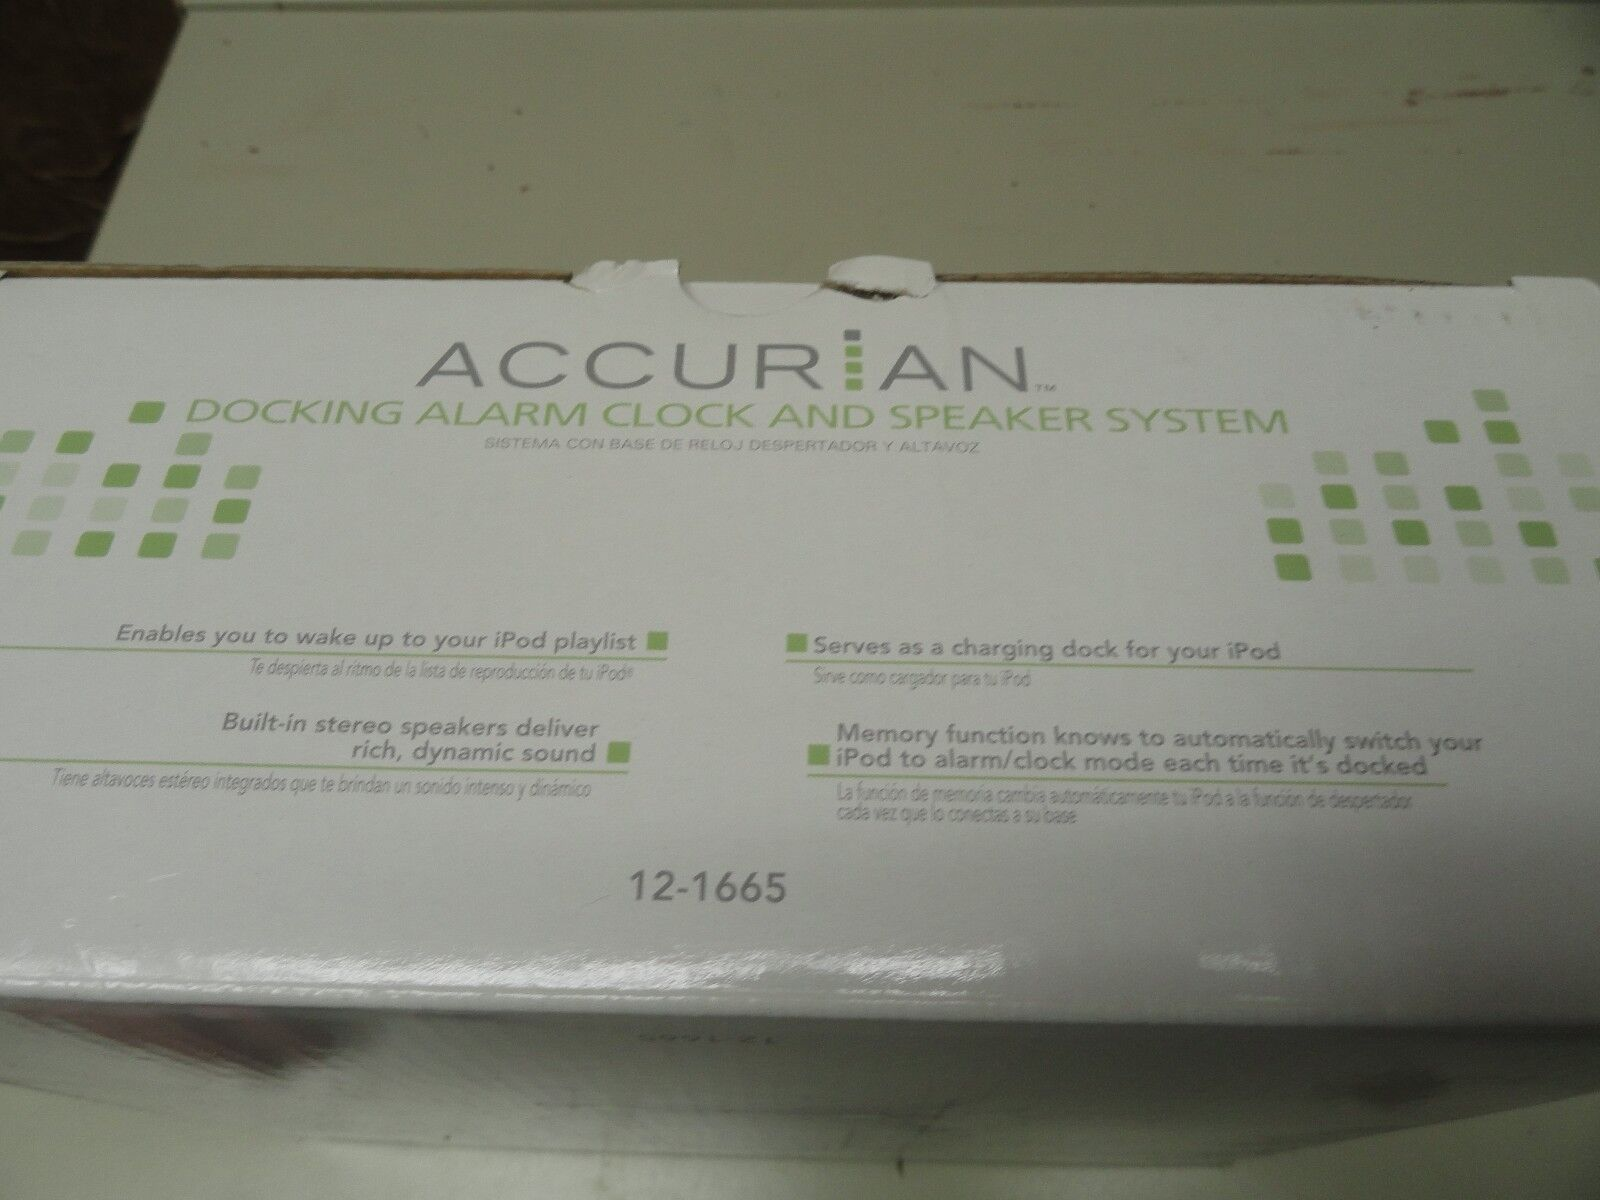 Accurian speakers | playerm.